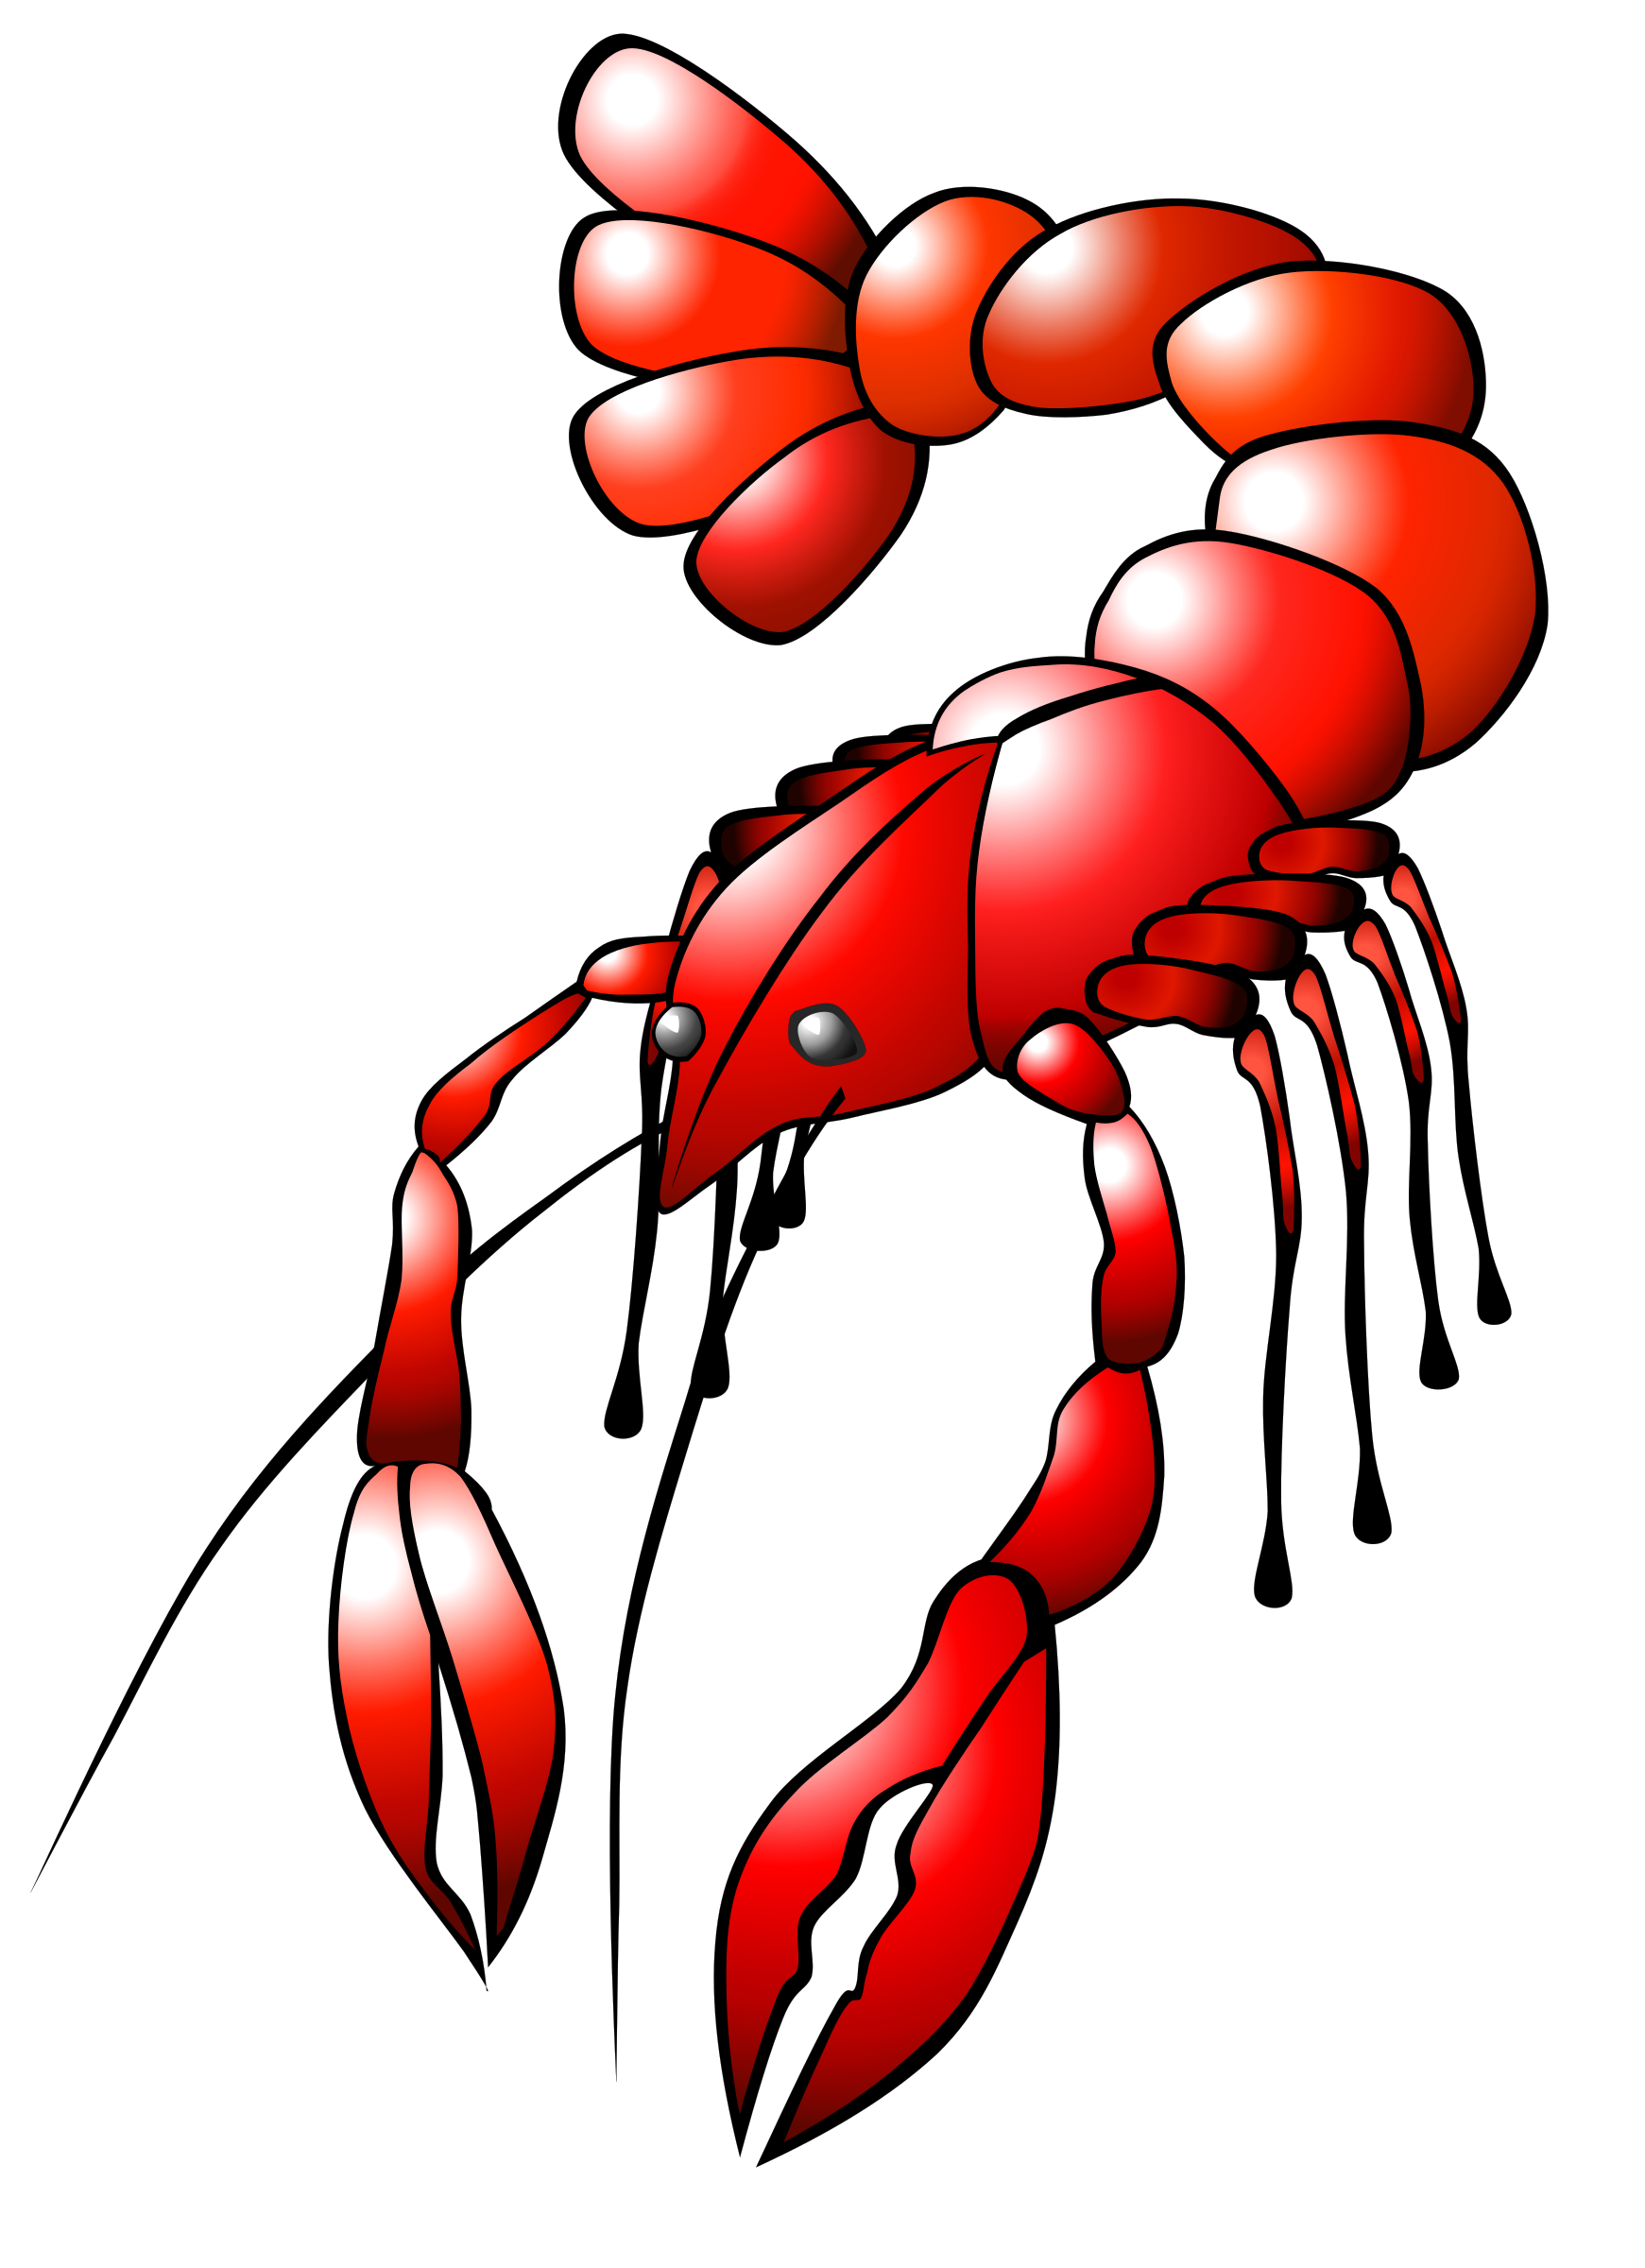 Lobster clipart animated. Crawfish big image png